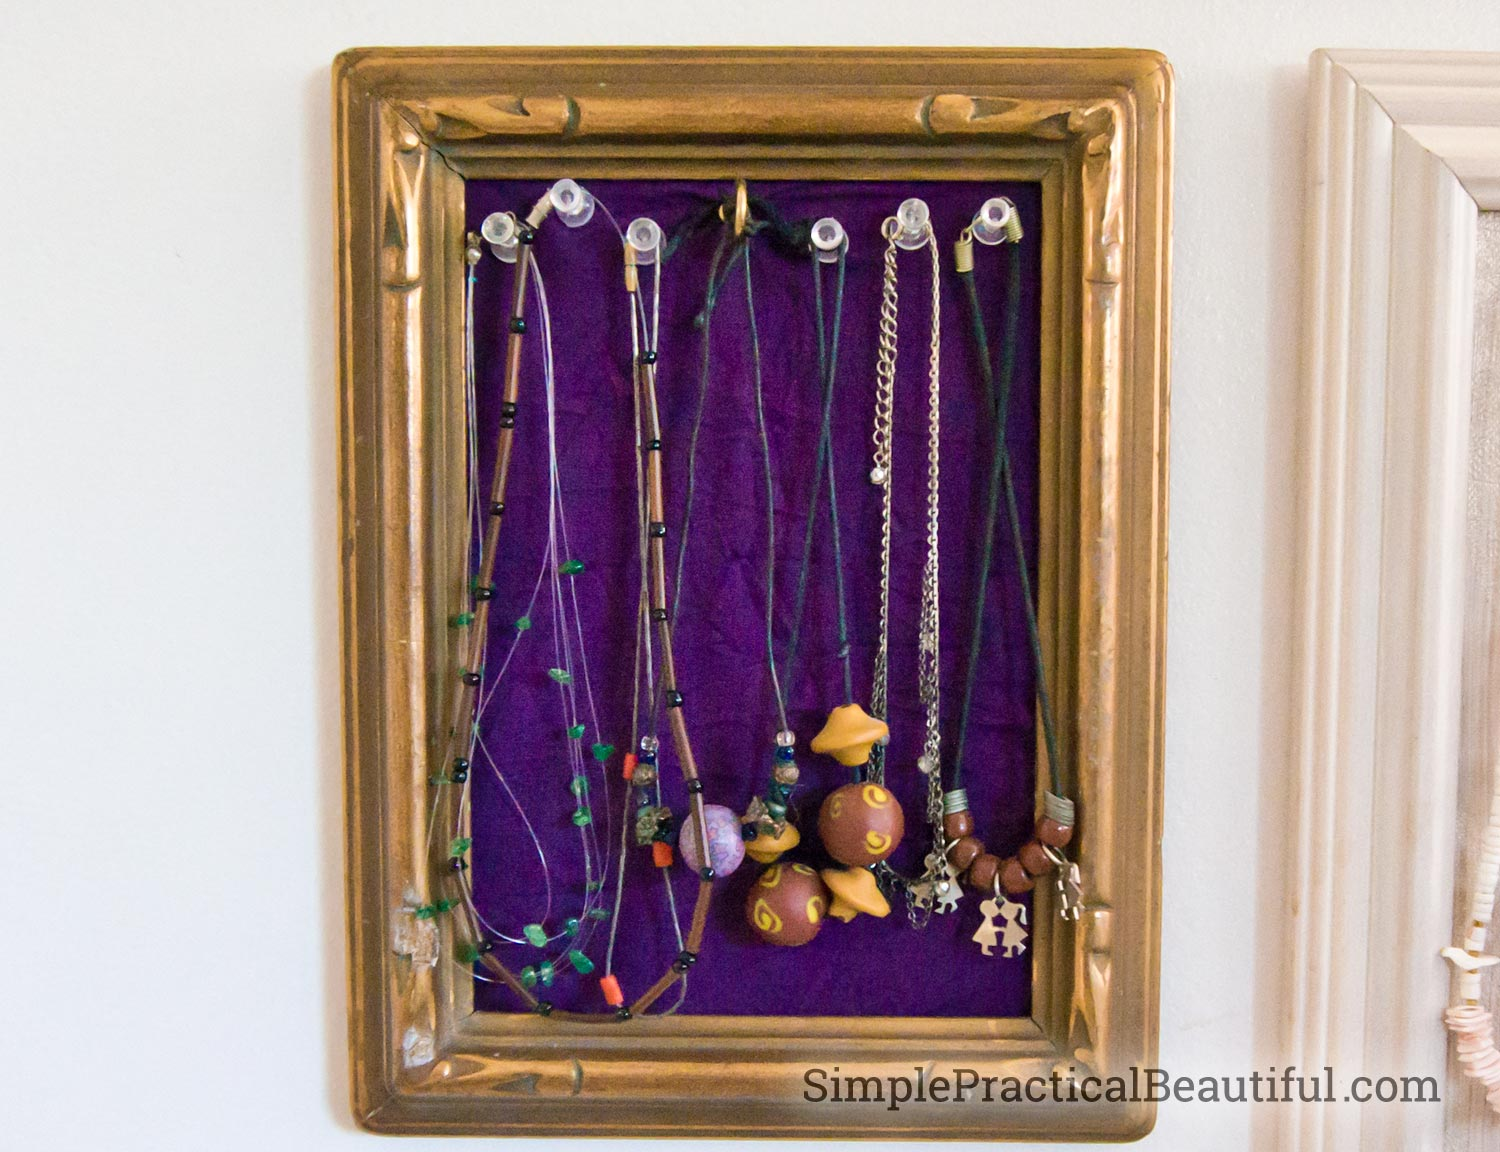 push-pins holding necklaces